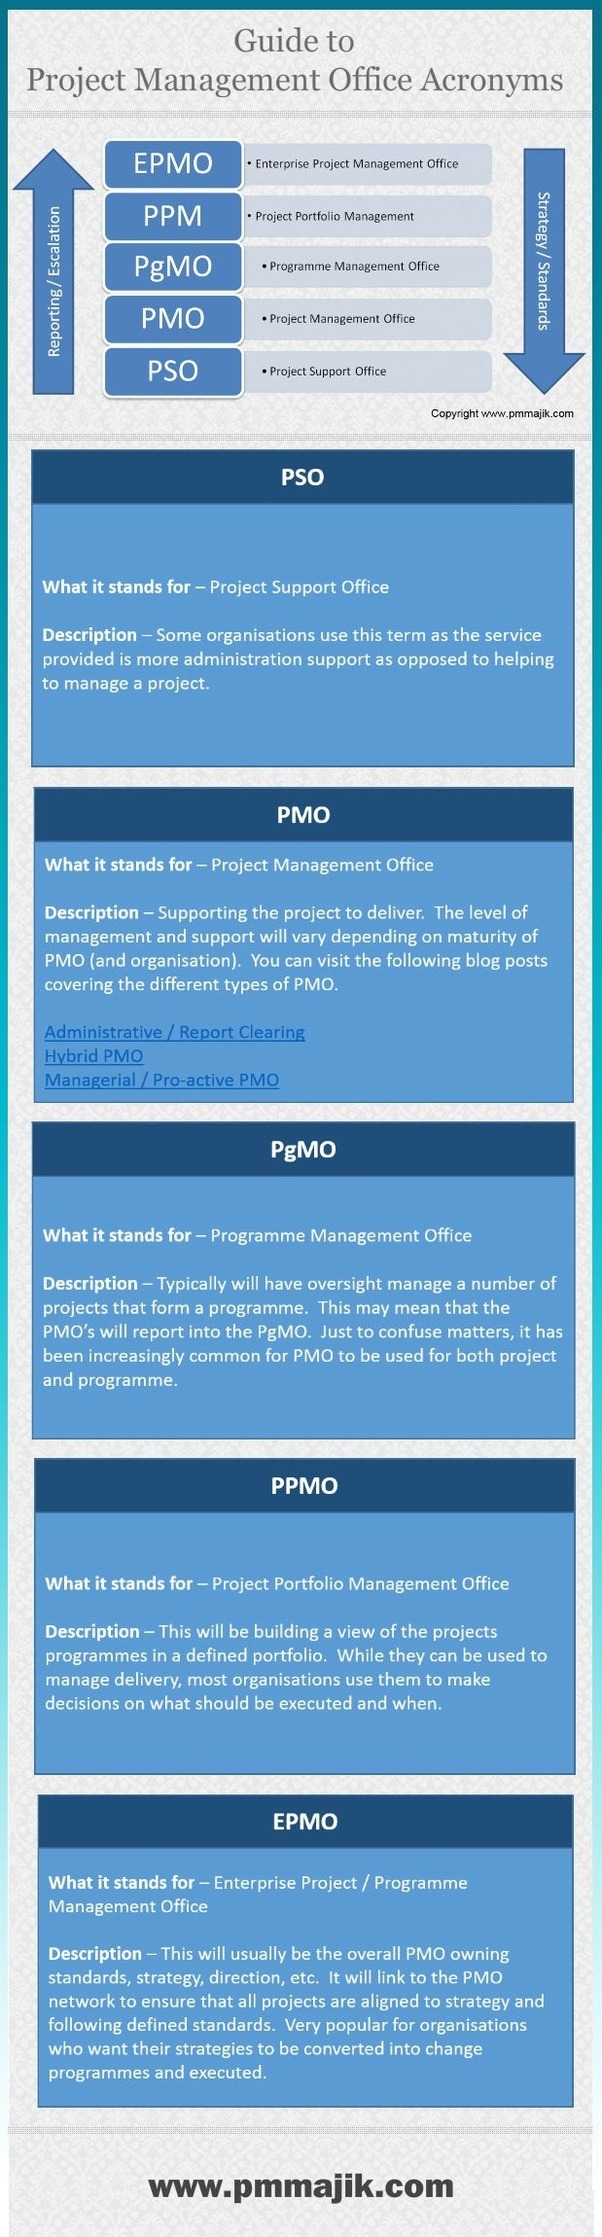 What Is The Difference Between Pmo And Pmp Quora